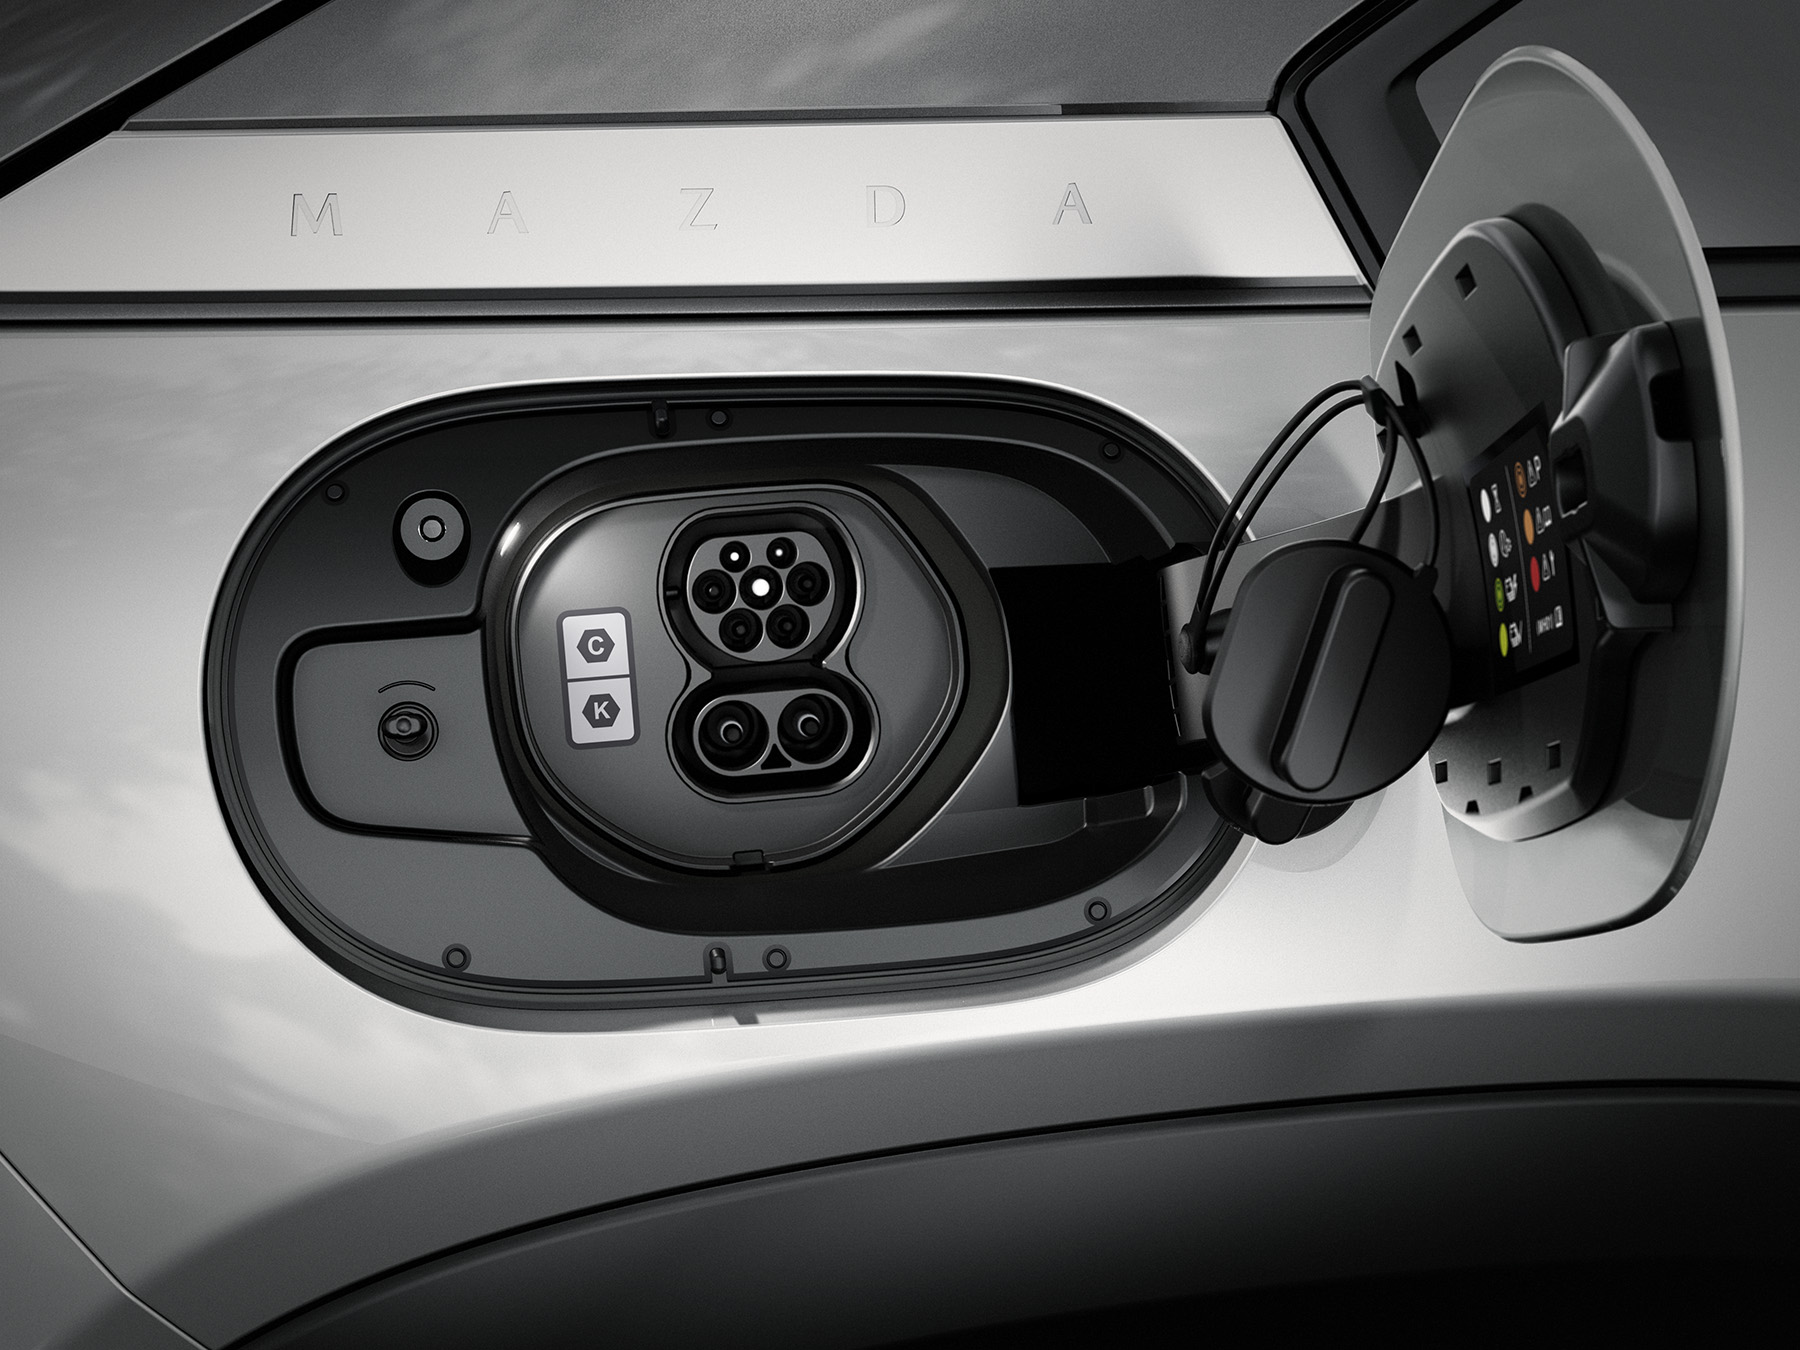 The Mazda MX 30 has a 1772 and a CMS connector level 1 and 2 charge port